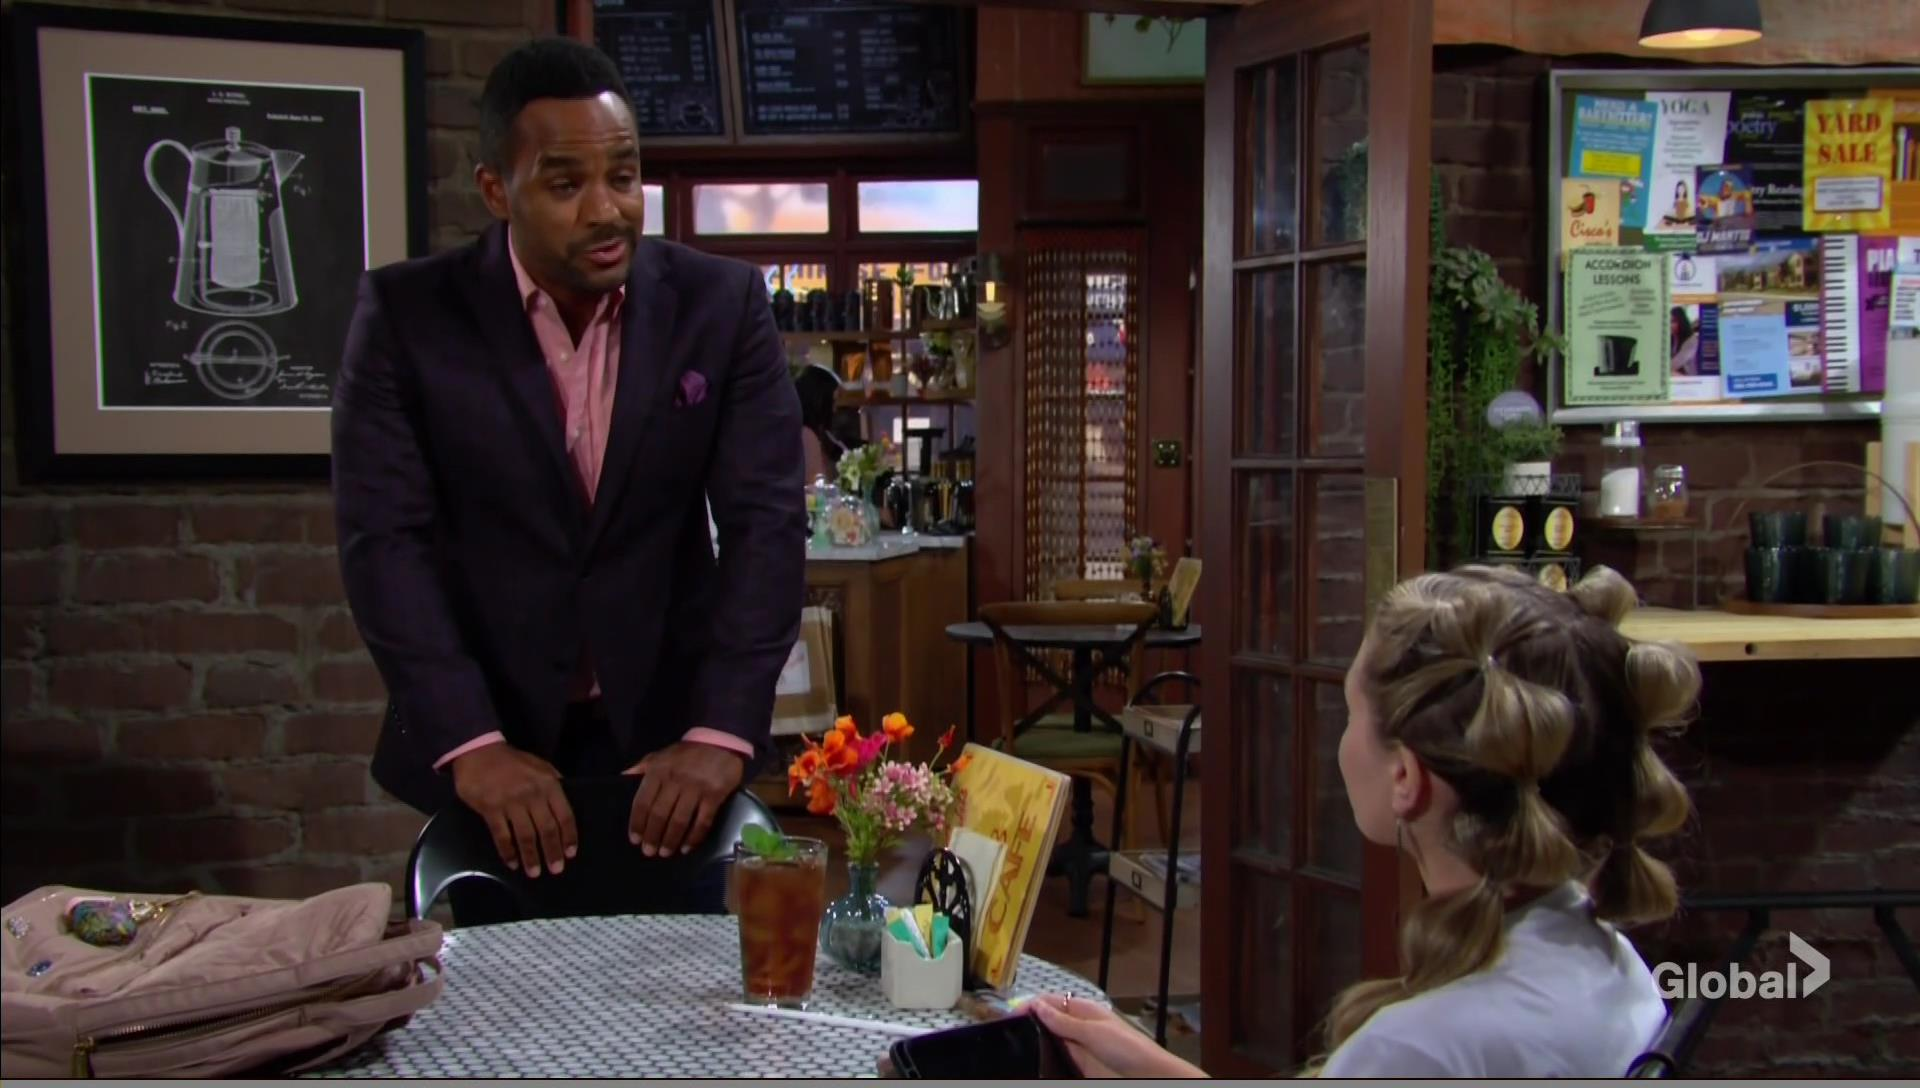 nate faith coffee young restless